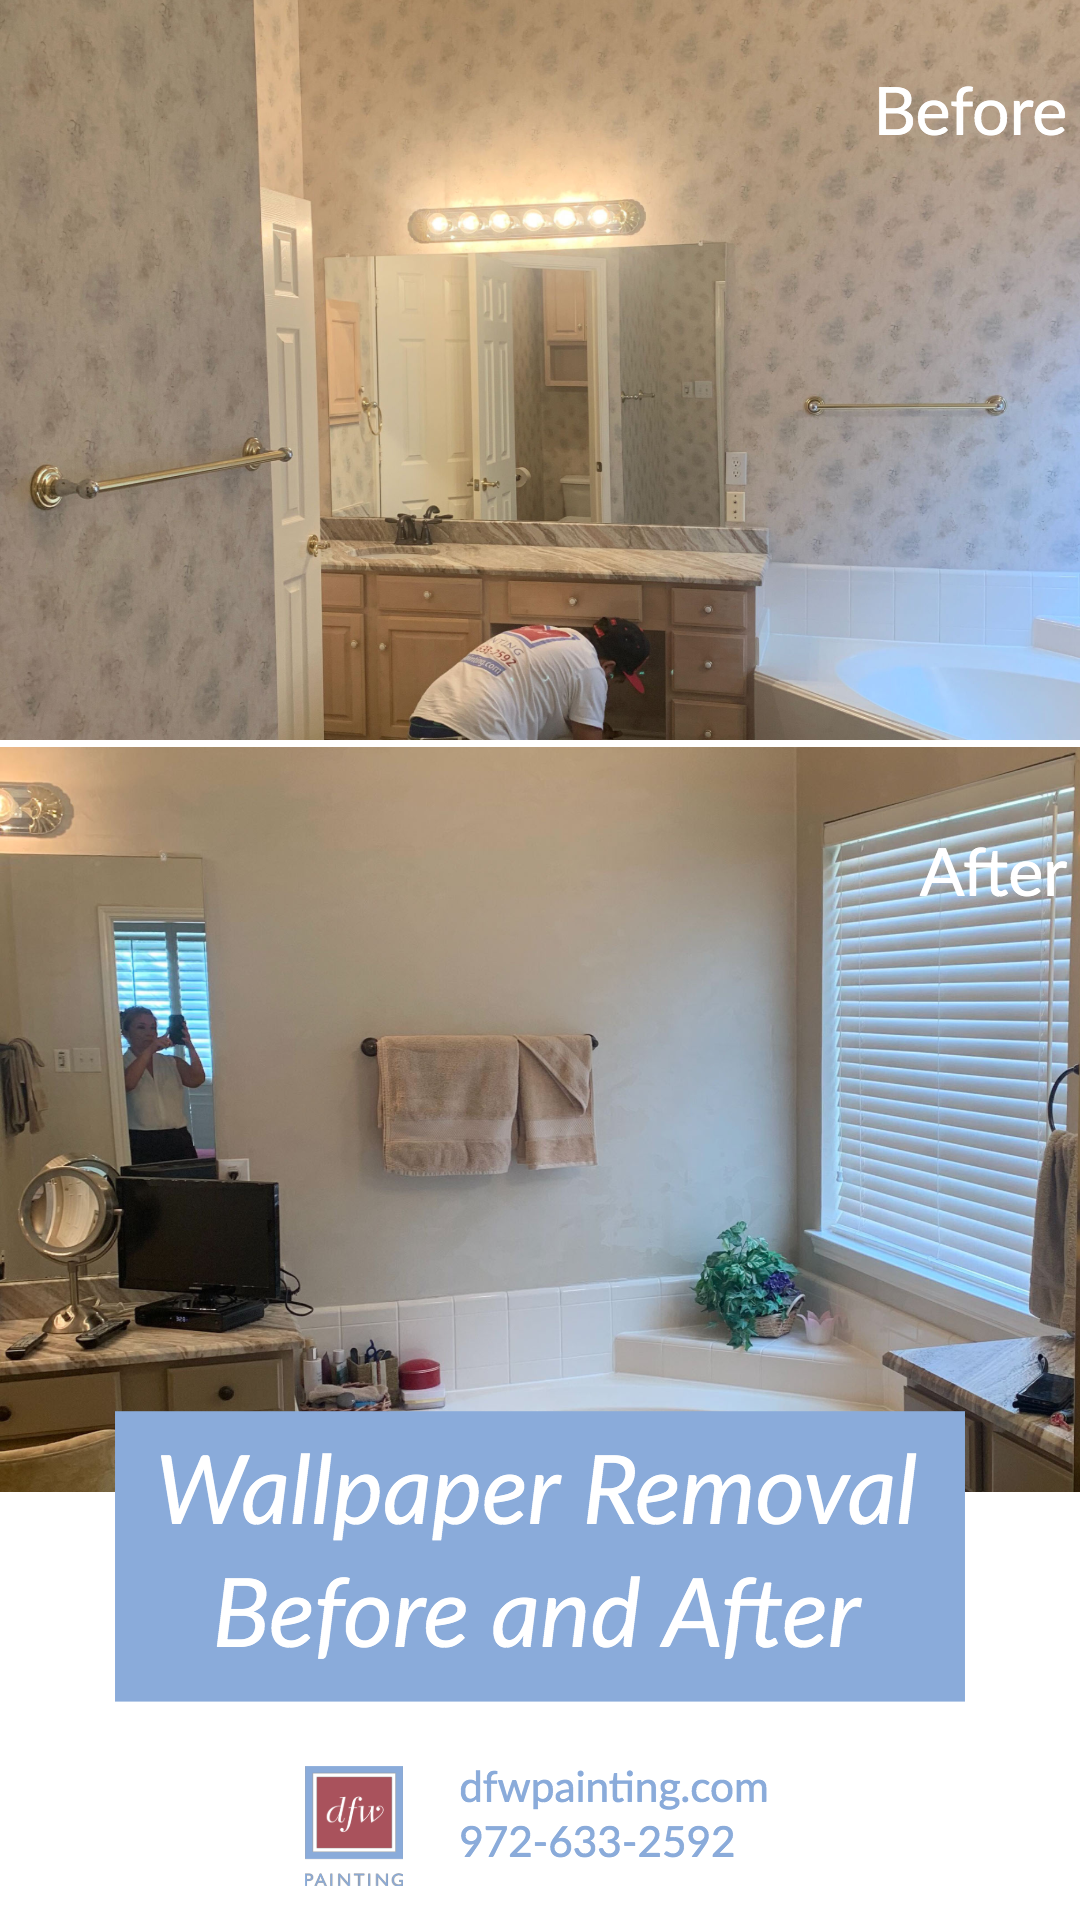 Wallpaper Removal Before And After Bathroom Renovation Dfw Painting Removable Wallpaper Wallpaper Painting Wallpaper